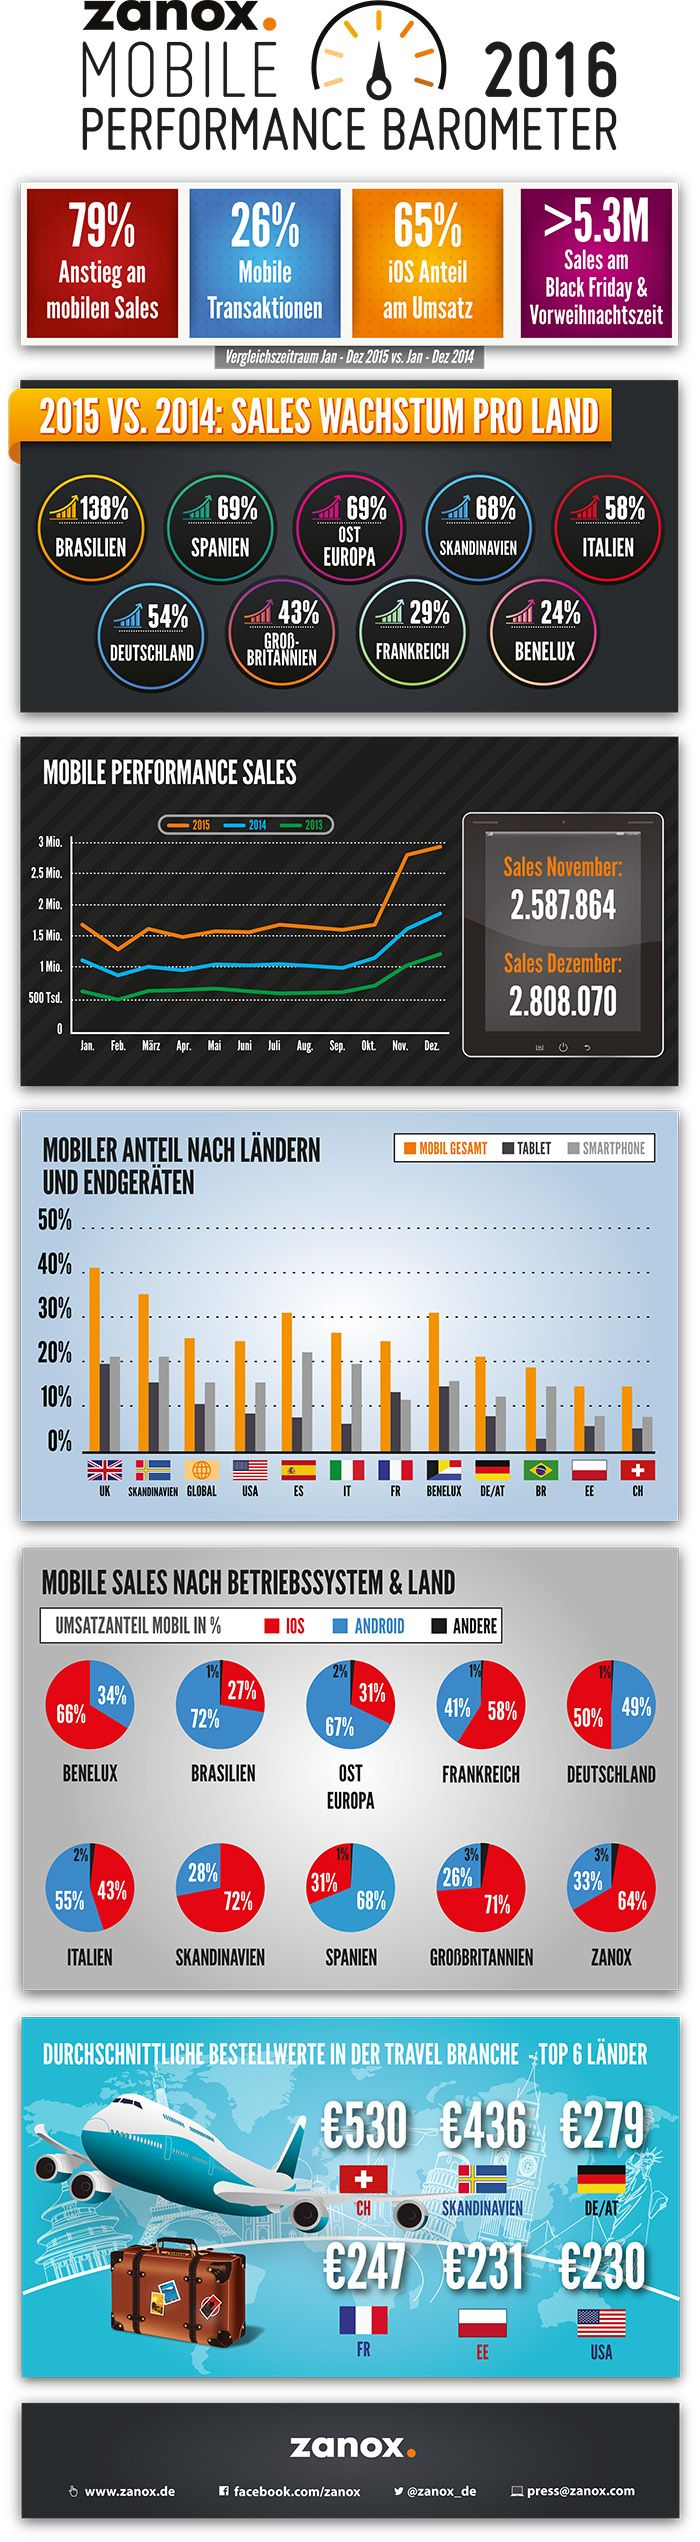 Mobile Performance Barometer 2016 by zanox